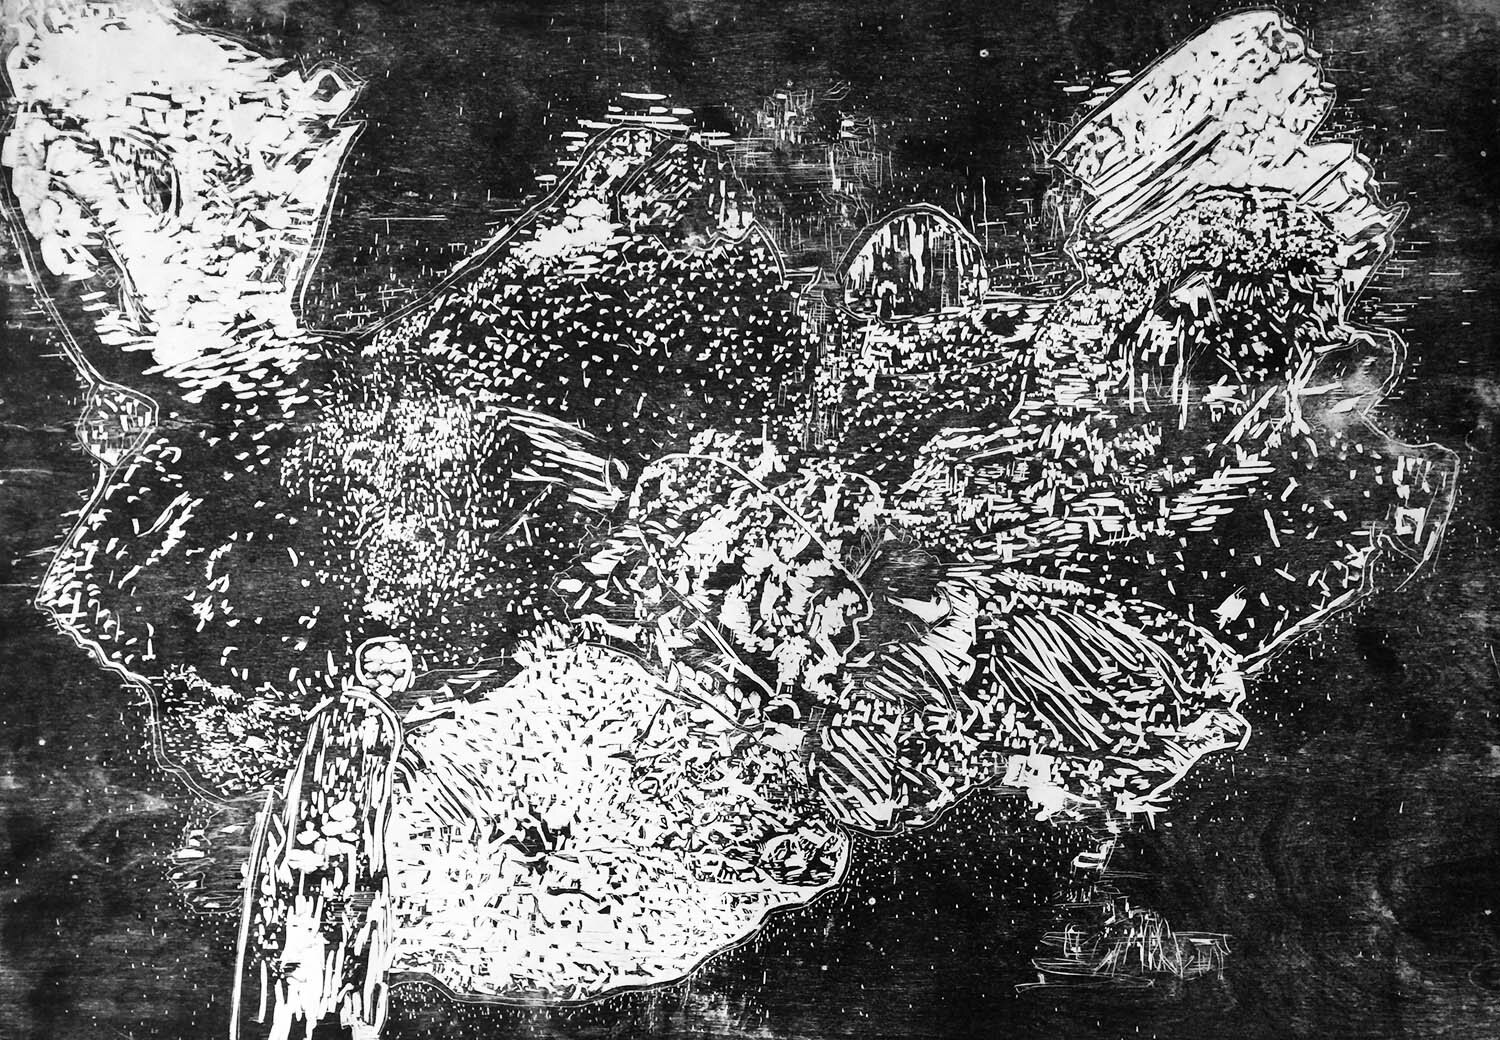 Airborne, ed. 1/5, hand-printed woodcut on paper, 42 x 60 in.